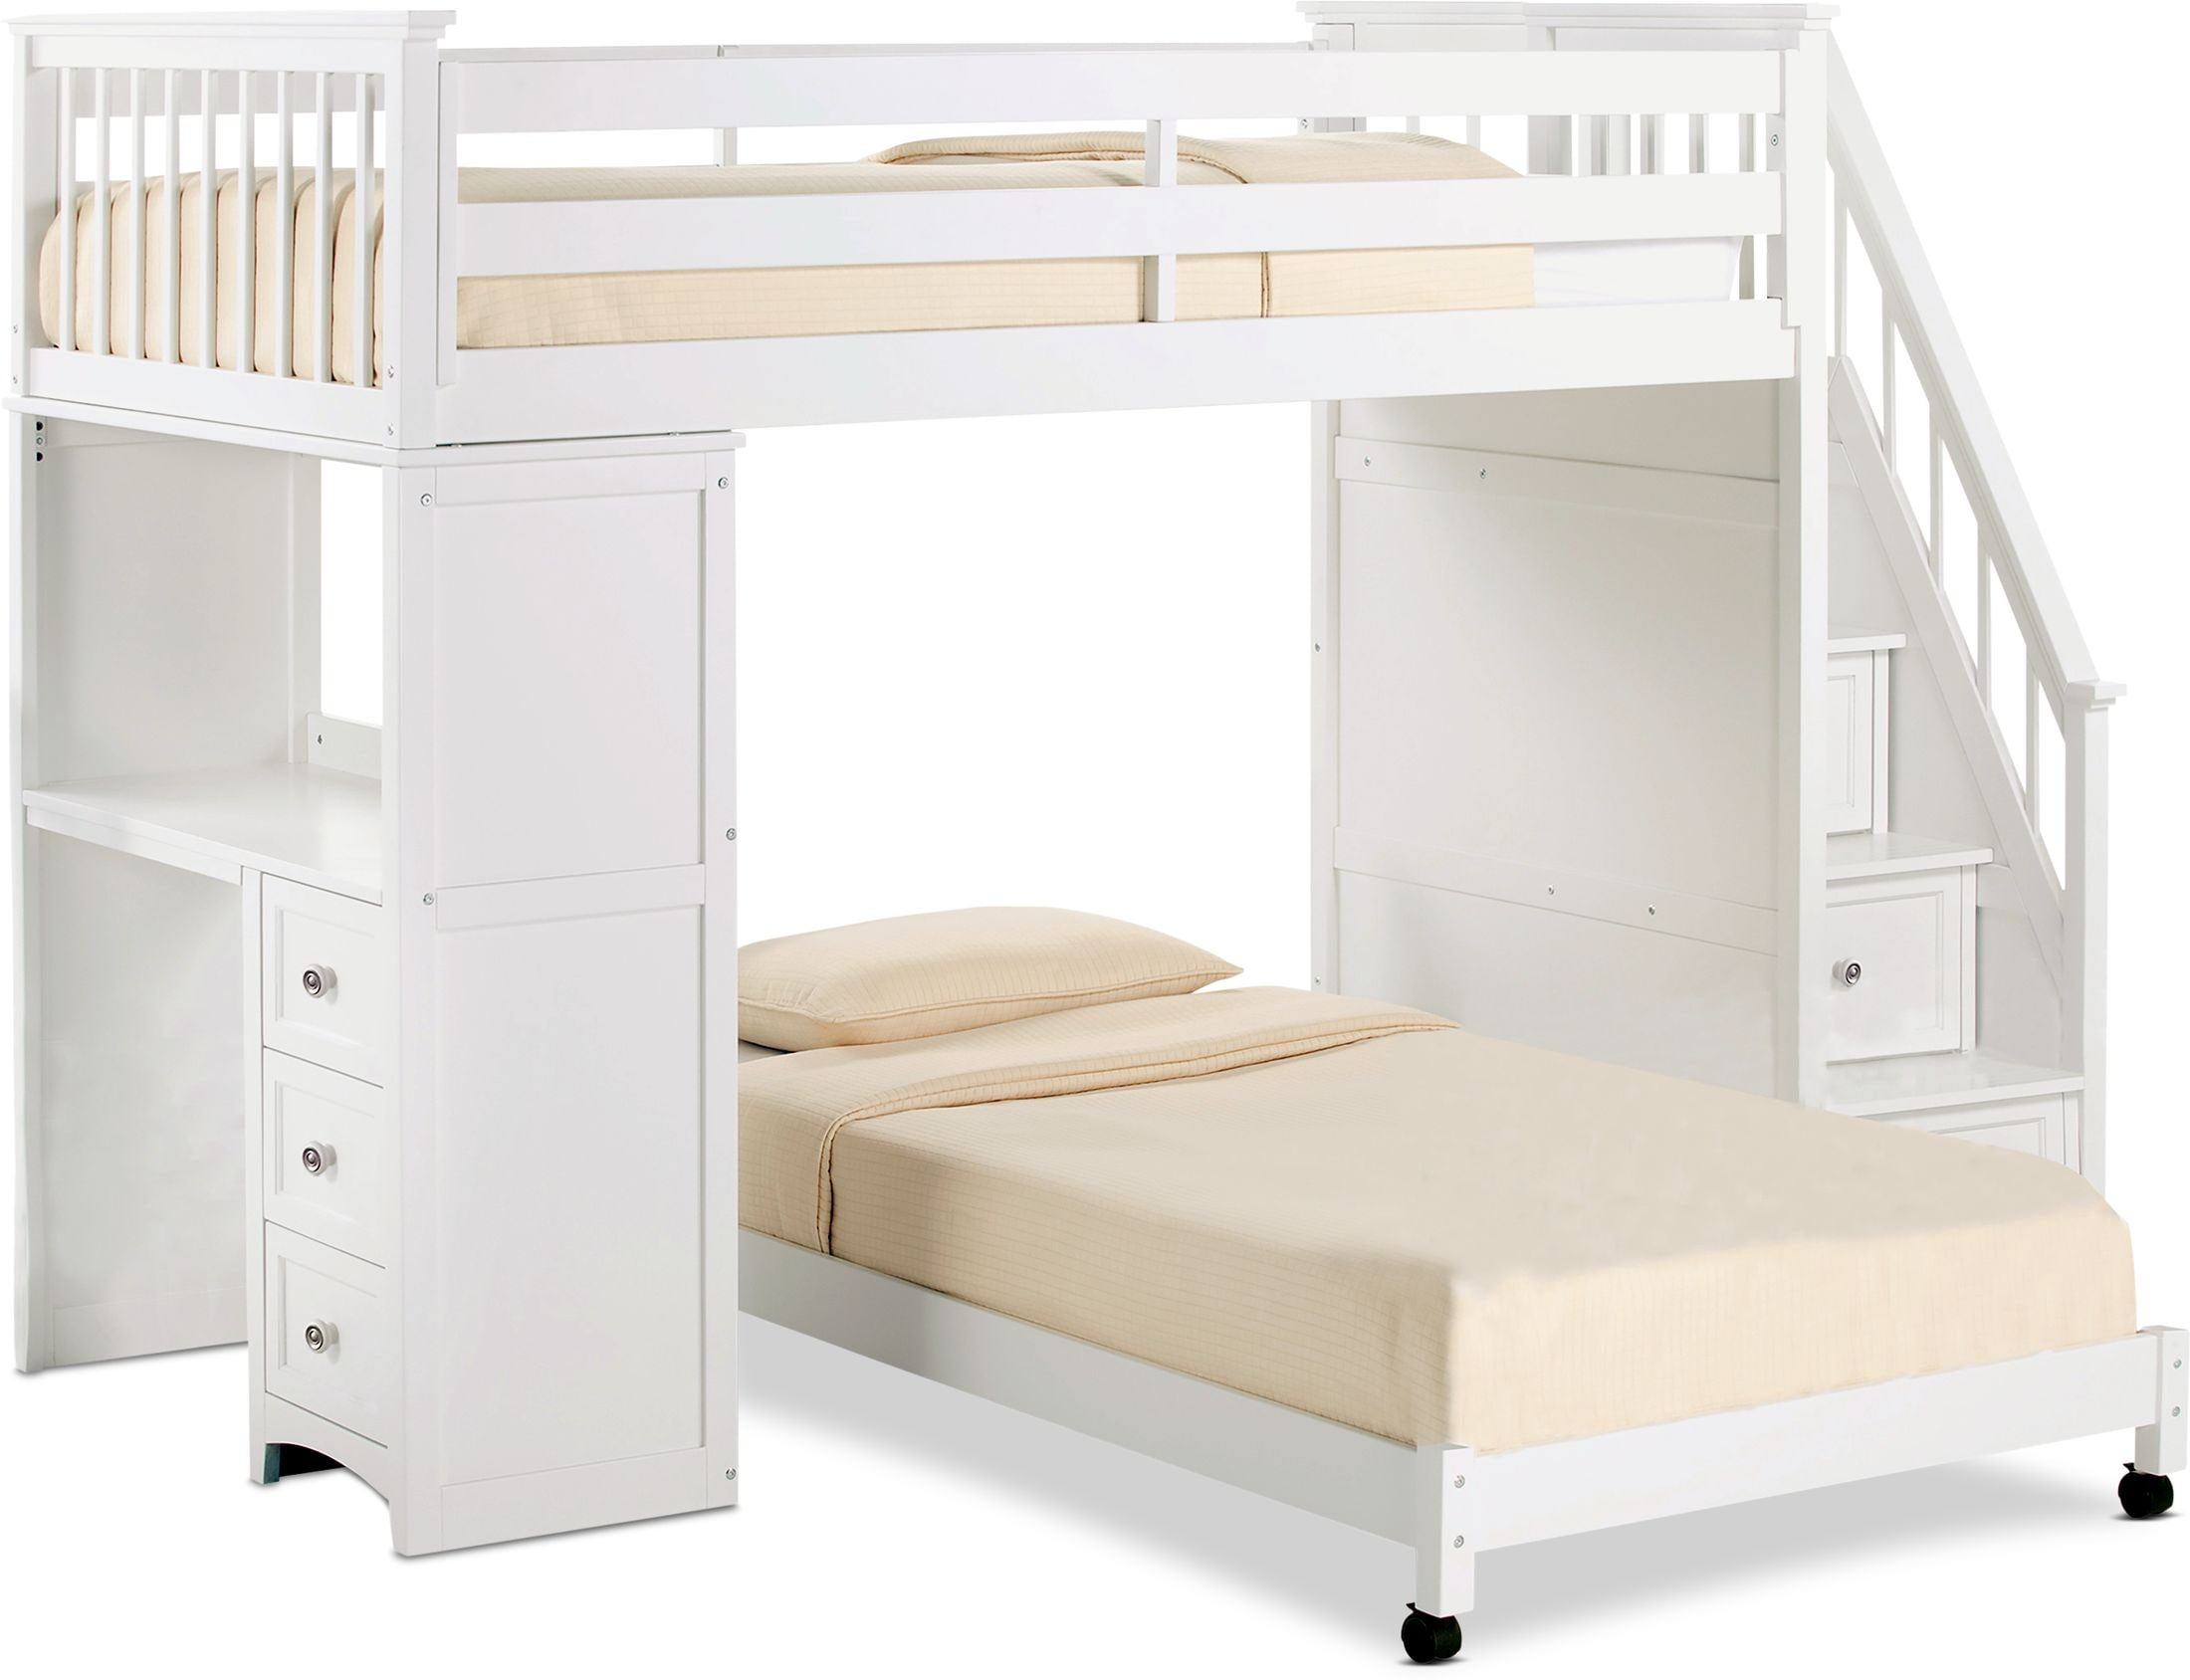 A Bunk Bed With A Desk Cheaper Than Retail Price Buy Clothing Accessories And Lifestyle Products For Women Men